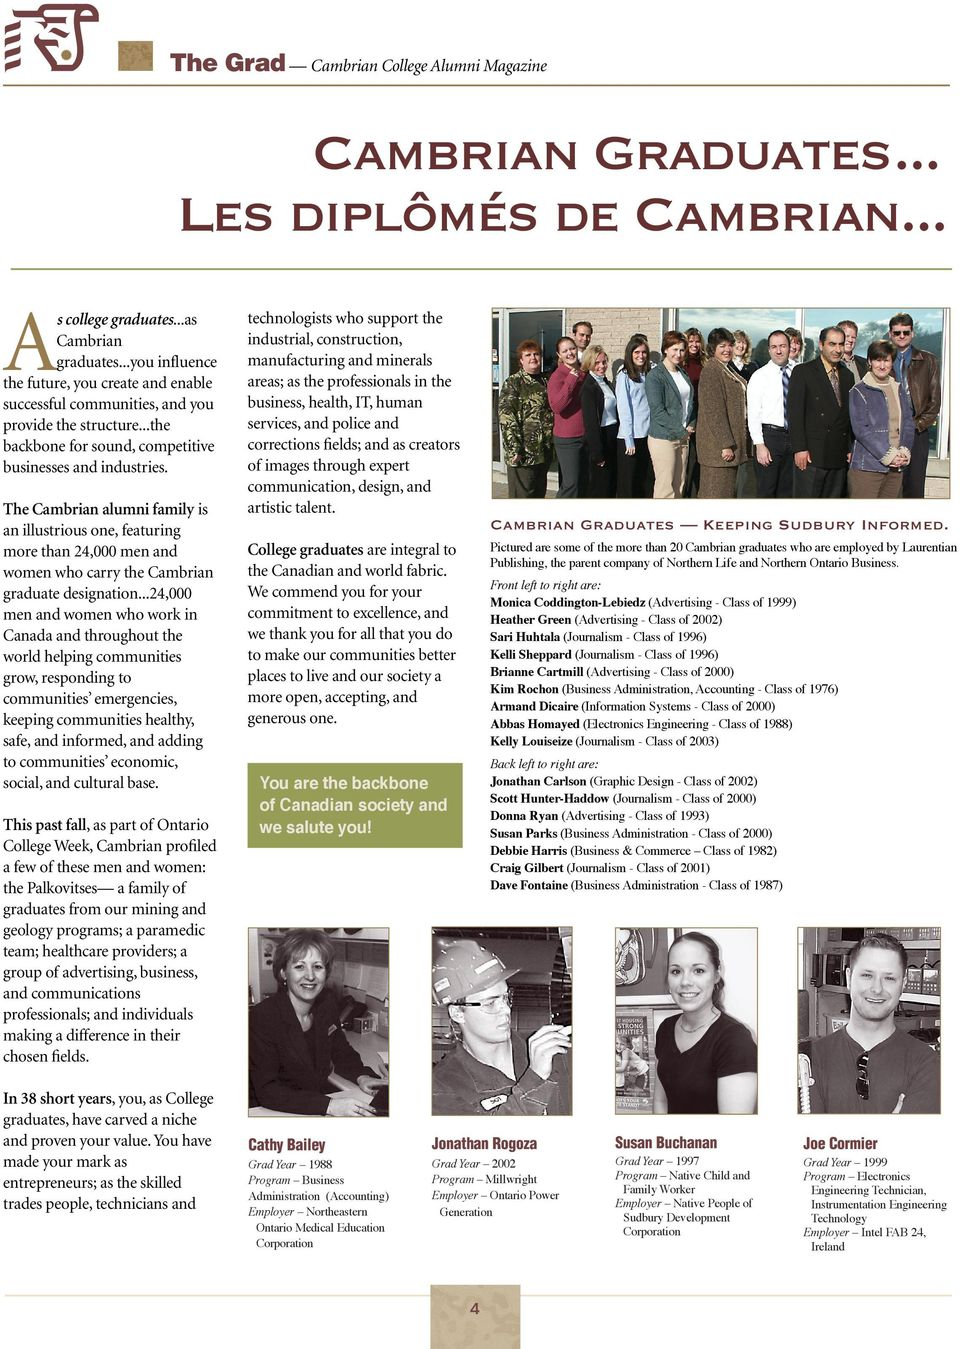 The Cambrian alumni family is an illustrious one, featuring more than 24,000 men and women who carry the Cambrian graduate designation.